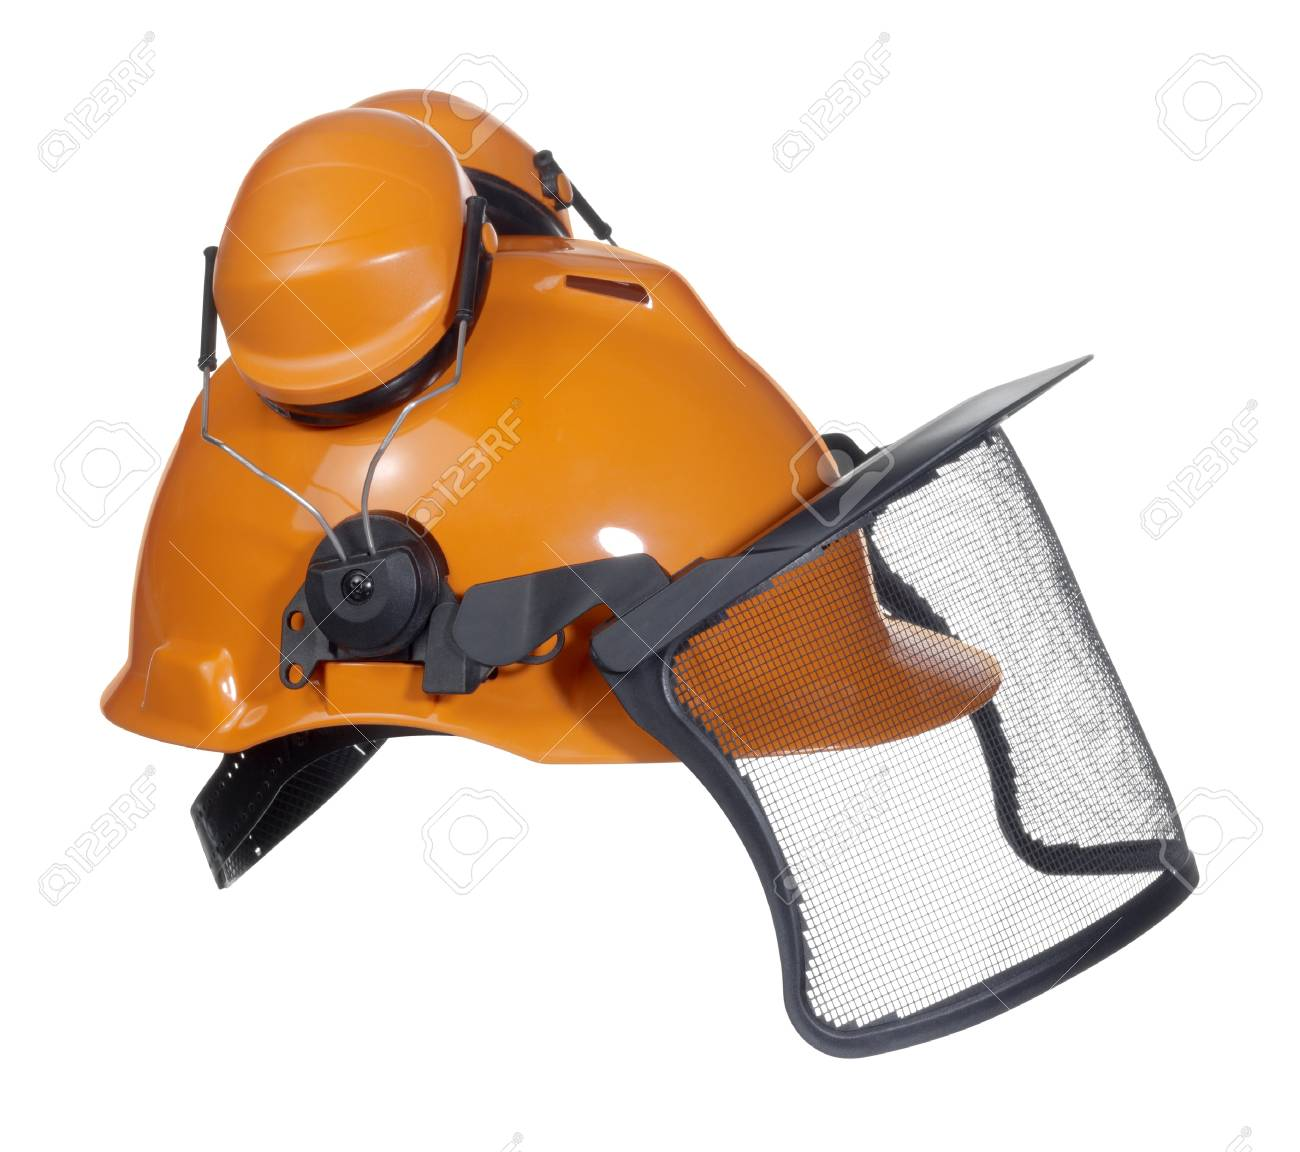 d5767db6 a orange protective helmet with ear- and face- protection. Studio shot in  white